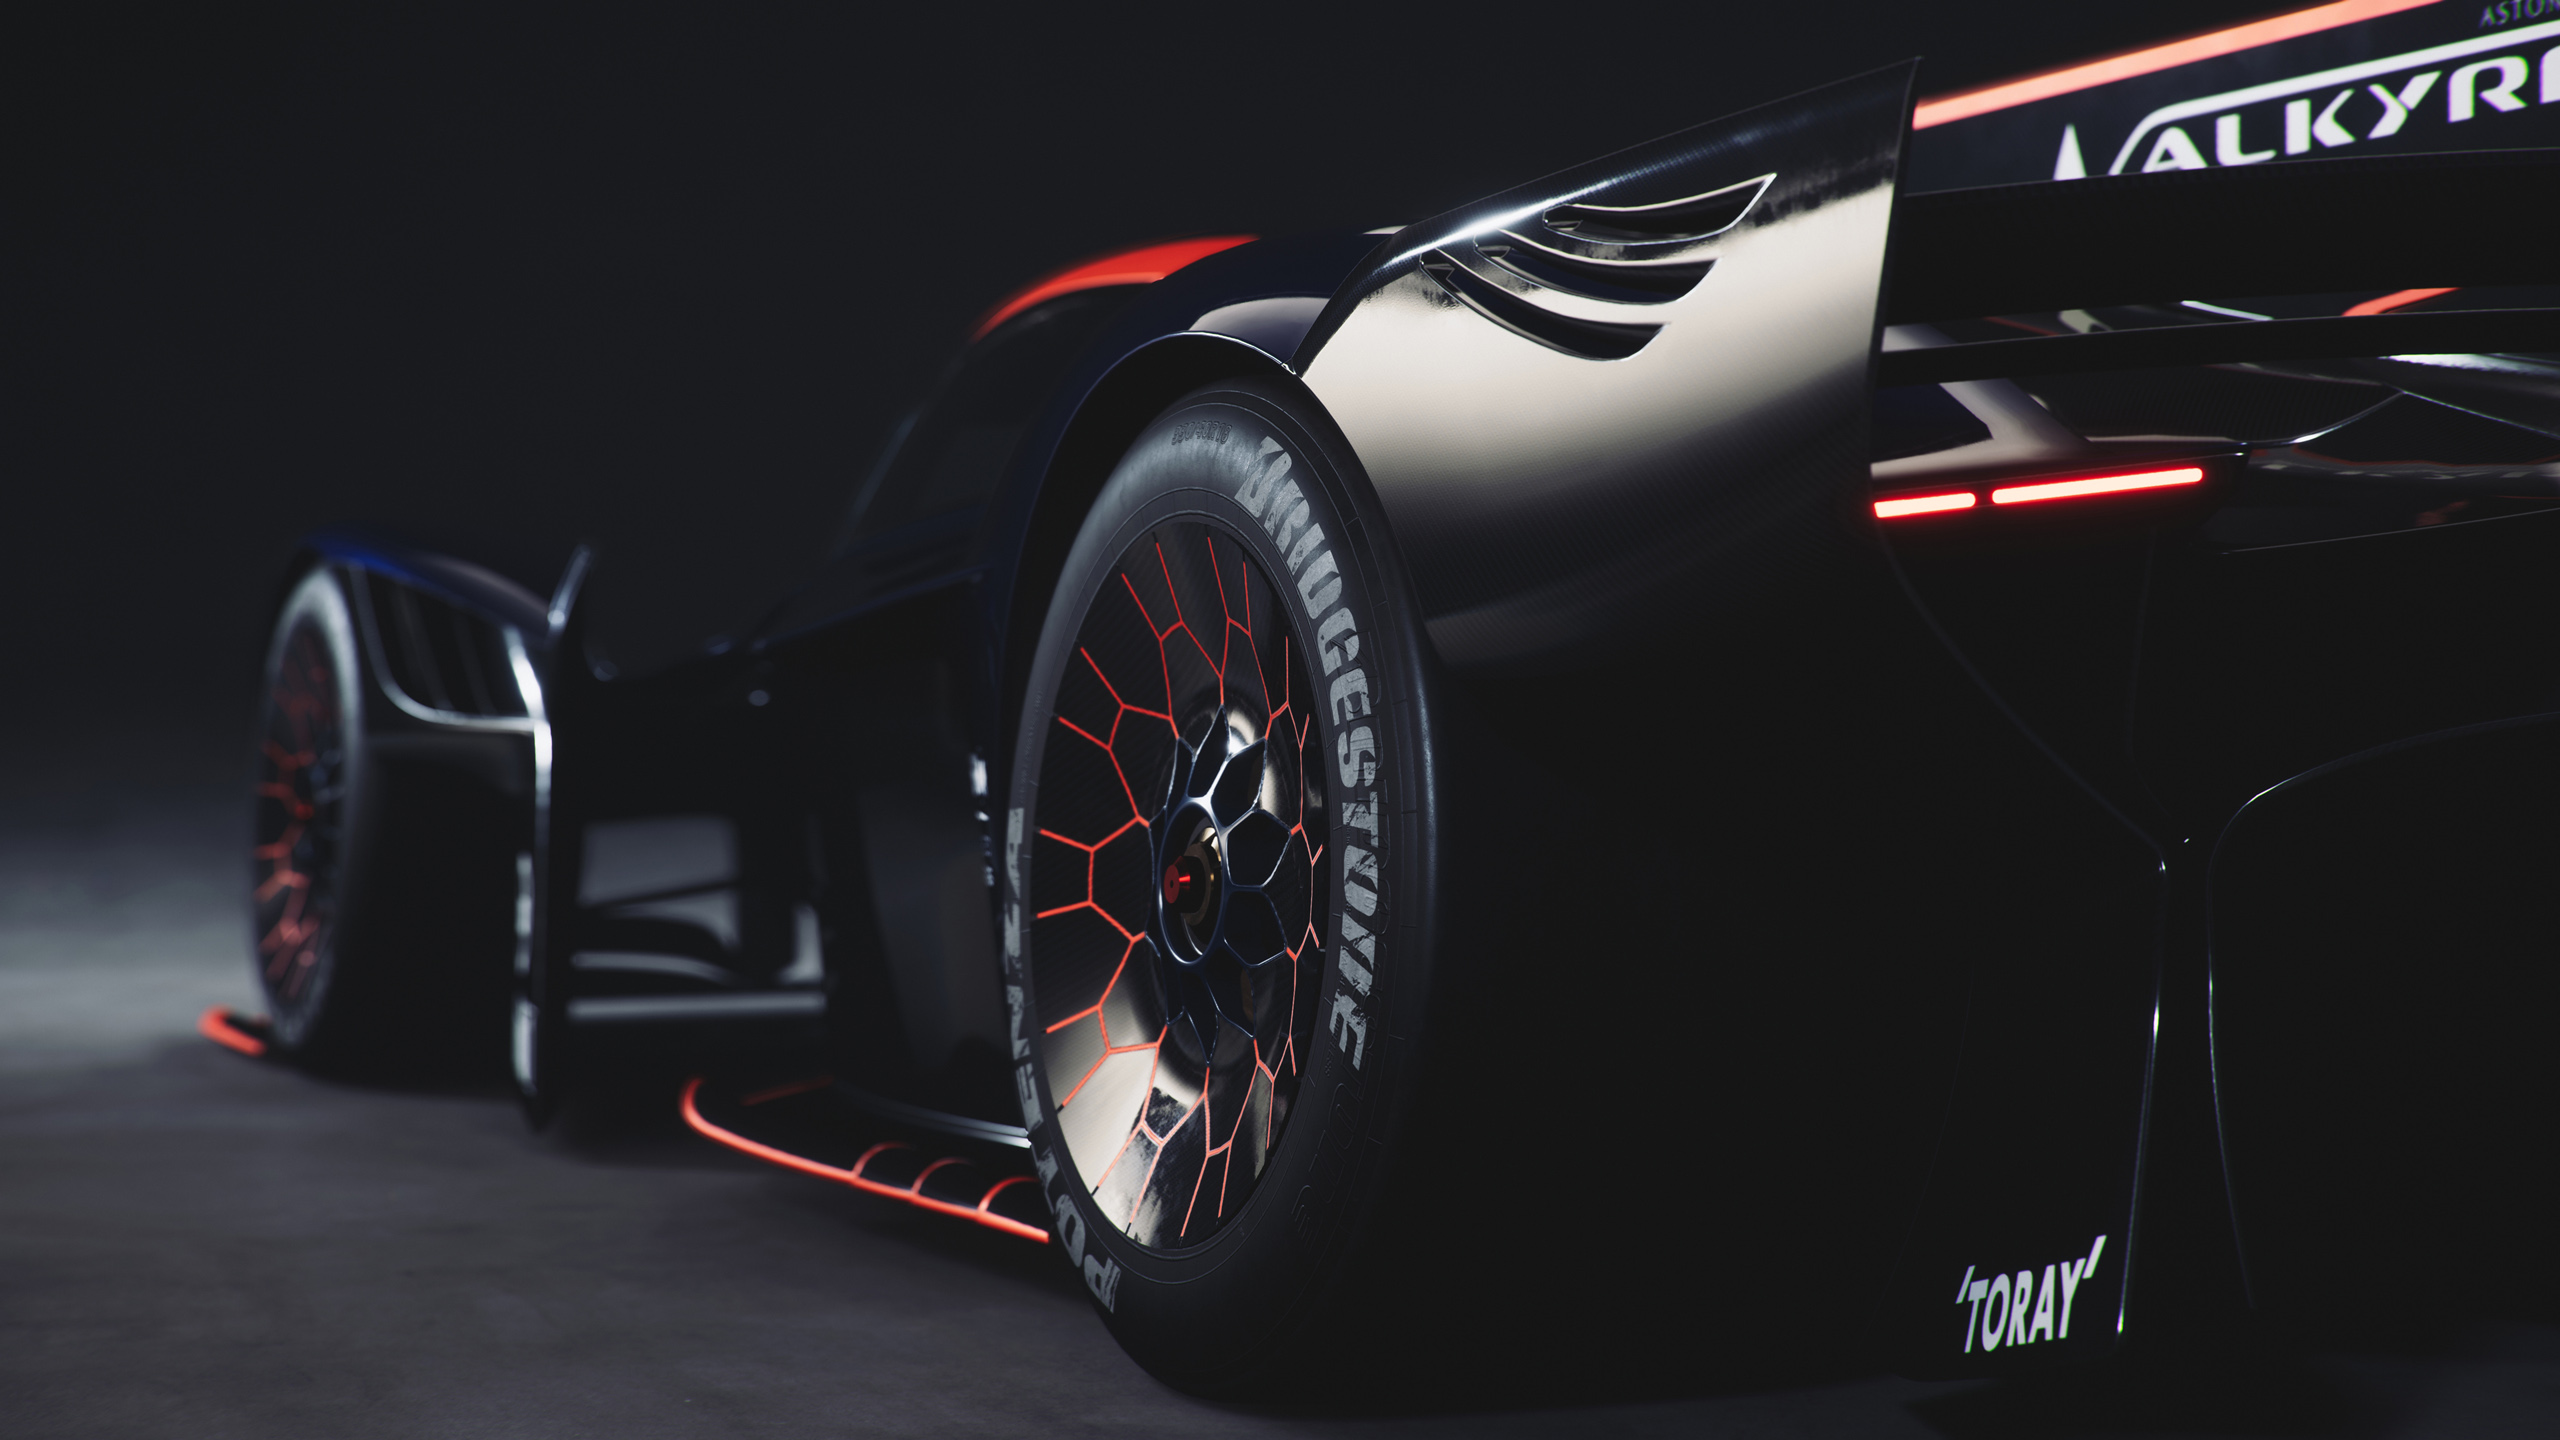 AMValkyrieAMR_v6_cam19_1440p_RTX Aston Martin Valkyrie AMR Pro for Assetto Corsa – New Previews